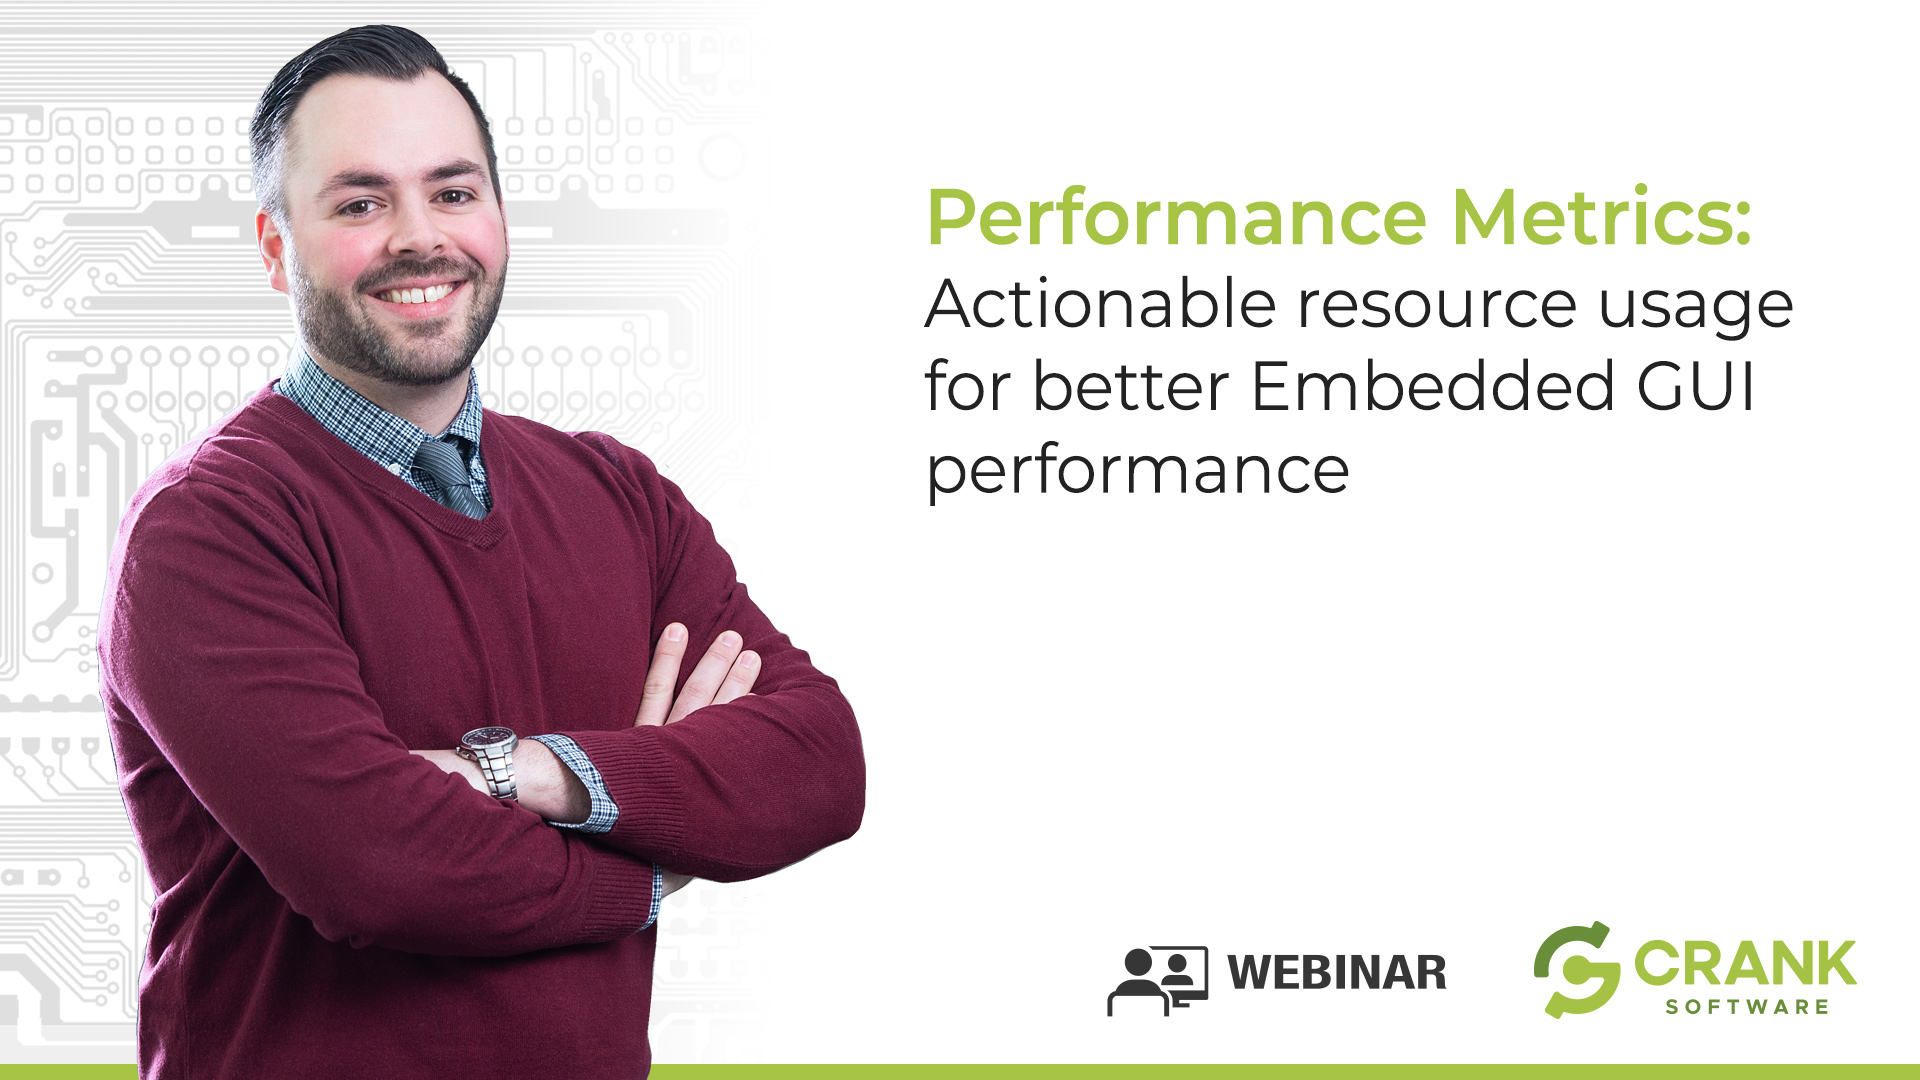 Performance_Metrics__Actionable_resource_usage_for_better_UI_performance